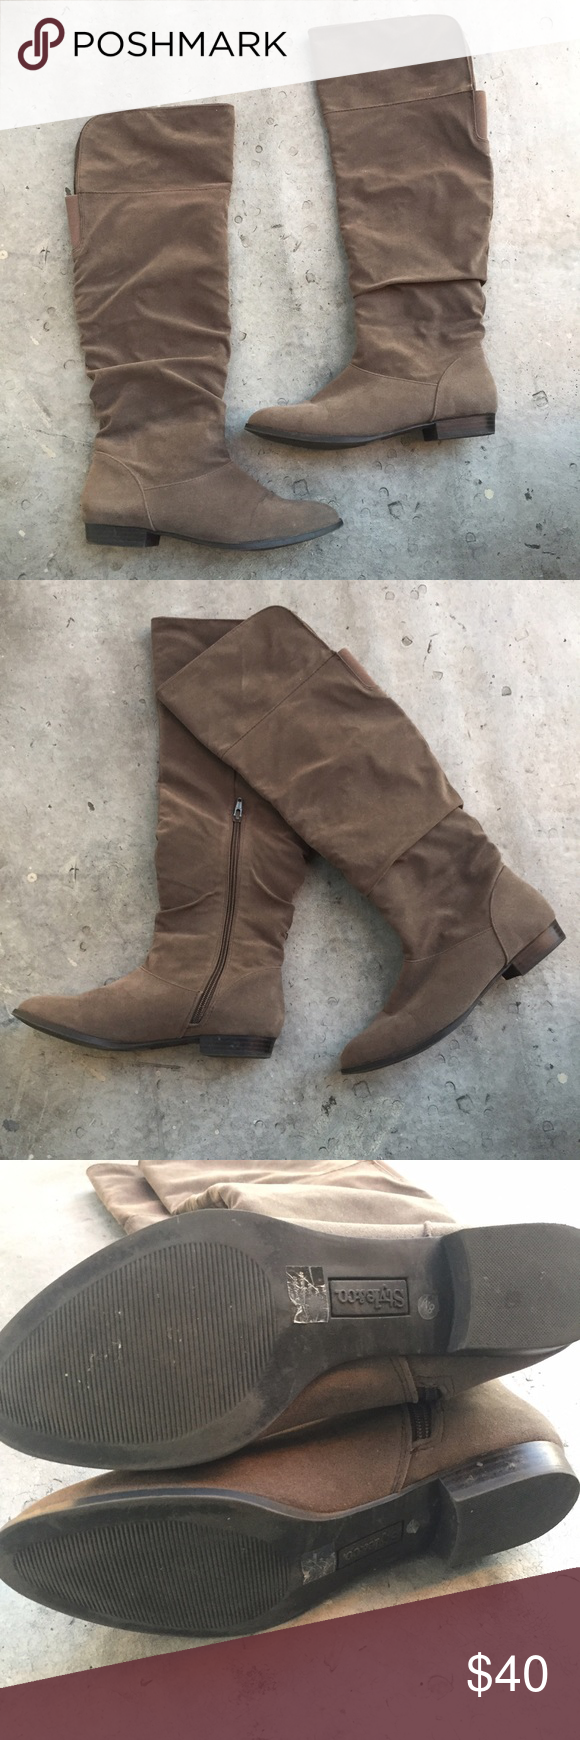 Style & Co Taupe Knee High Boots Gently used Style & Co taupe boots. Perfect for Fall. NO PAYPAL OR TRADES.                                                               👠Blog: willbakeforshoes.com 🐥Twitter: @willbakeforshoe 📷Instagram: @willbakeforshoes Style & Co Shoes Over the Knee Boots